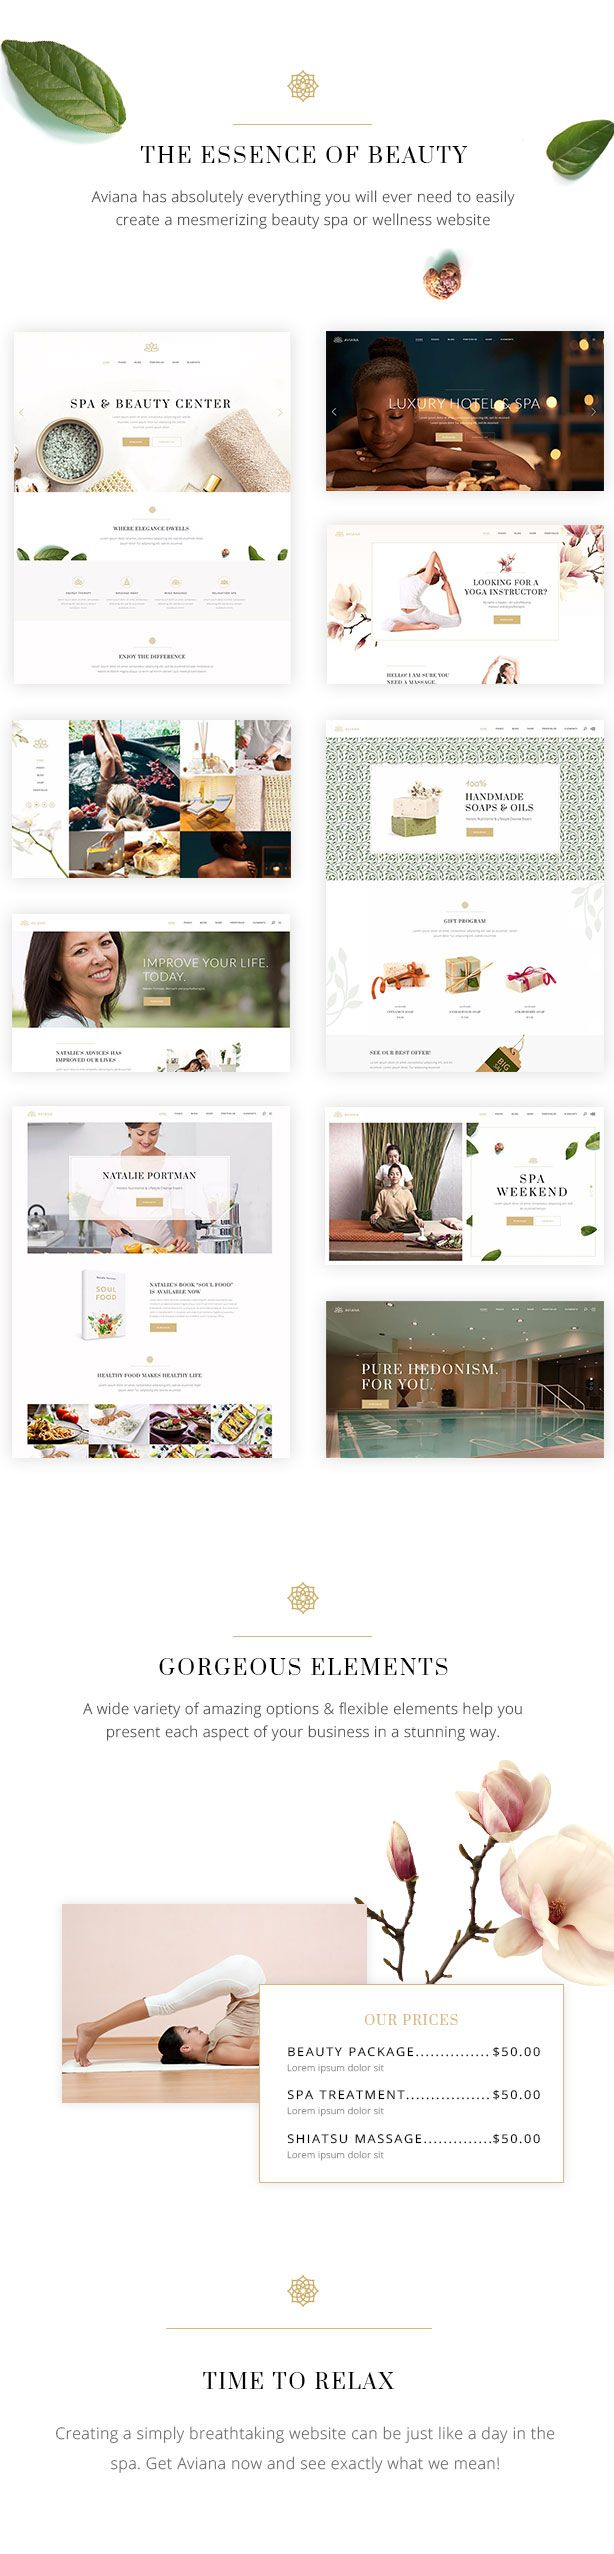 Aviana - An Elegant Lifestyle and Wellness Theme #beauty #blog #center • Available here ➝ https://themeforest.net/item/aviana-an-elegant-lifestyle-and-wellness-theme/20872284?ref=pxcr